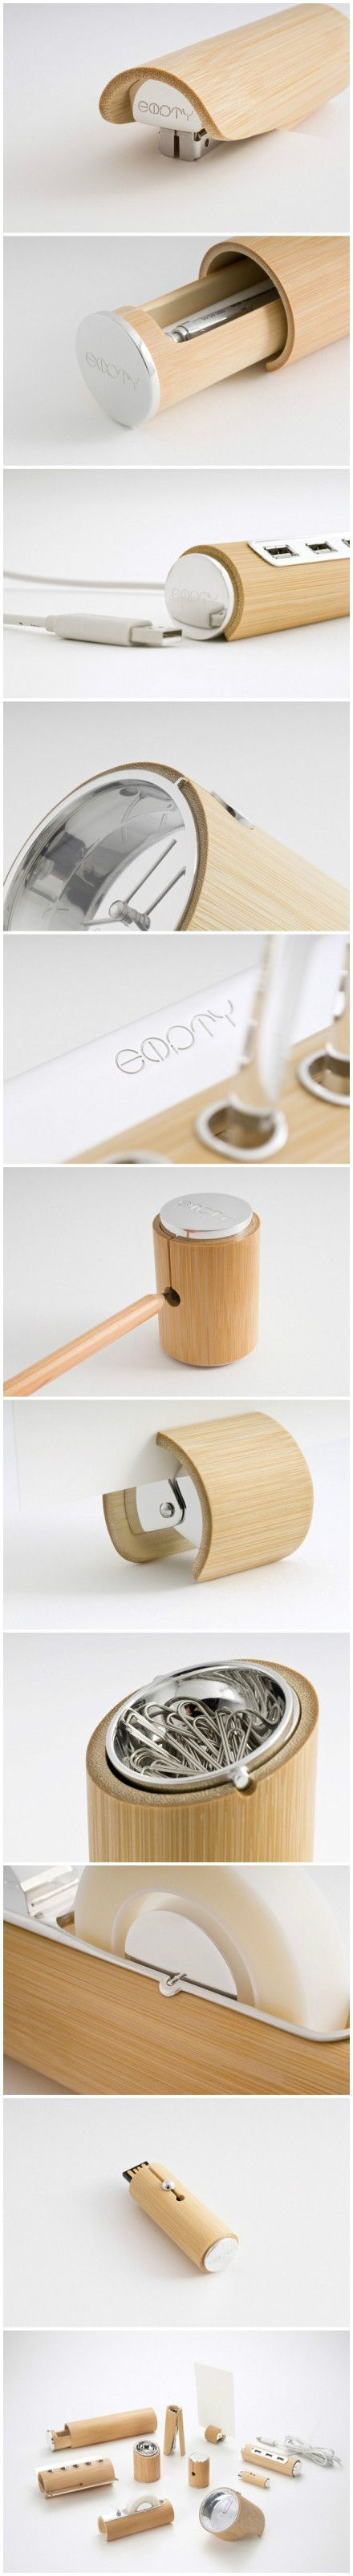 bamboo products Brought to you for your enjoyment by Just-In-CaseDeck.com Has your coffee maker ever malfunctioned, overflowing coffee and grounds onto the counters making a big mess?